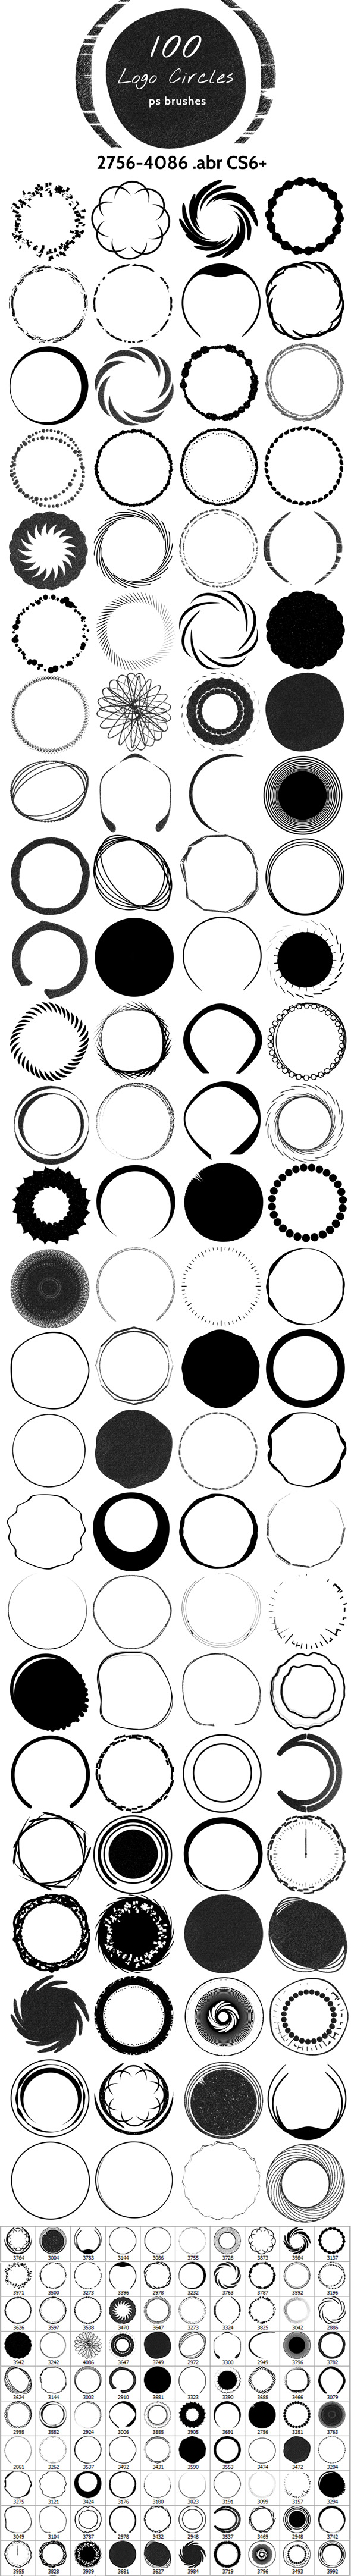 Logo Circles Brushes - Artistic Brushes